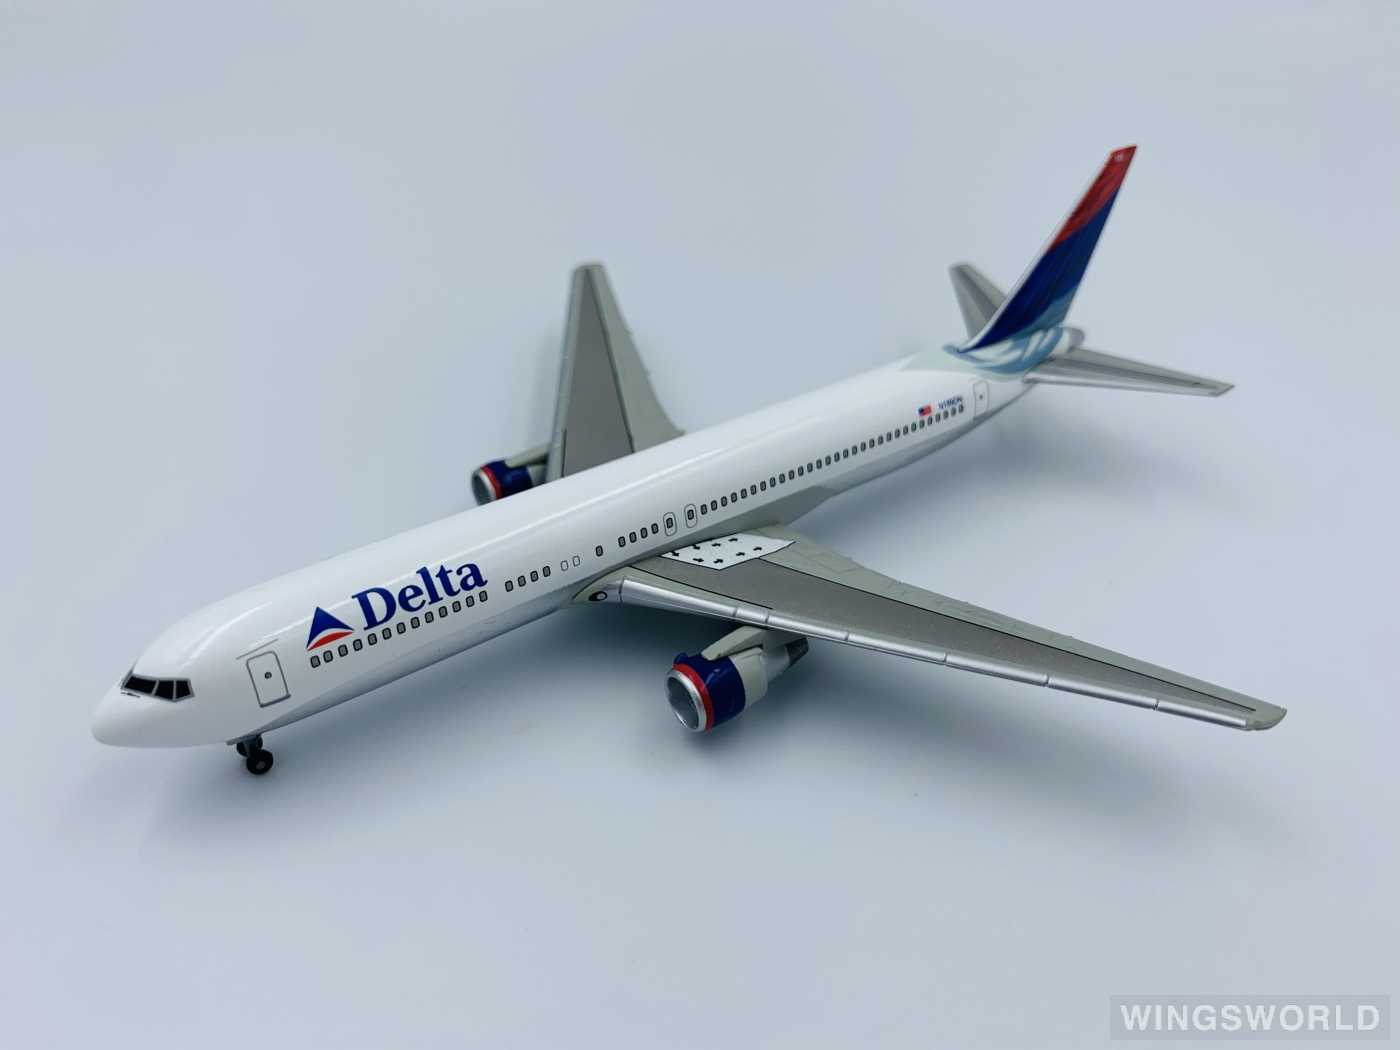 Dragon Models 1:400 55214 Delta Air Lines 达美航空 Boeing 767-300 N189DN